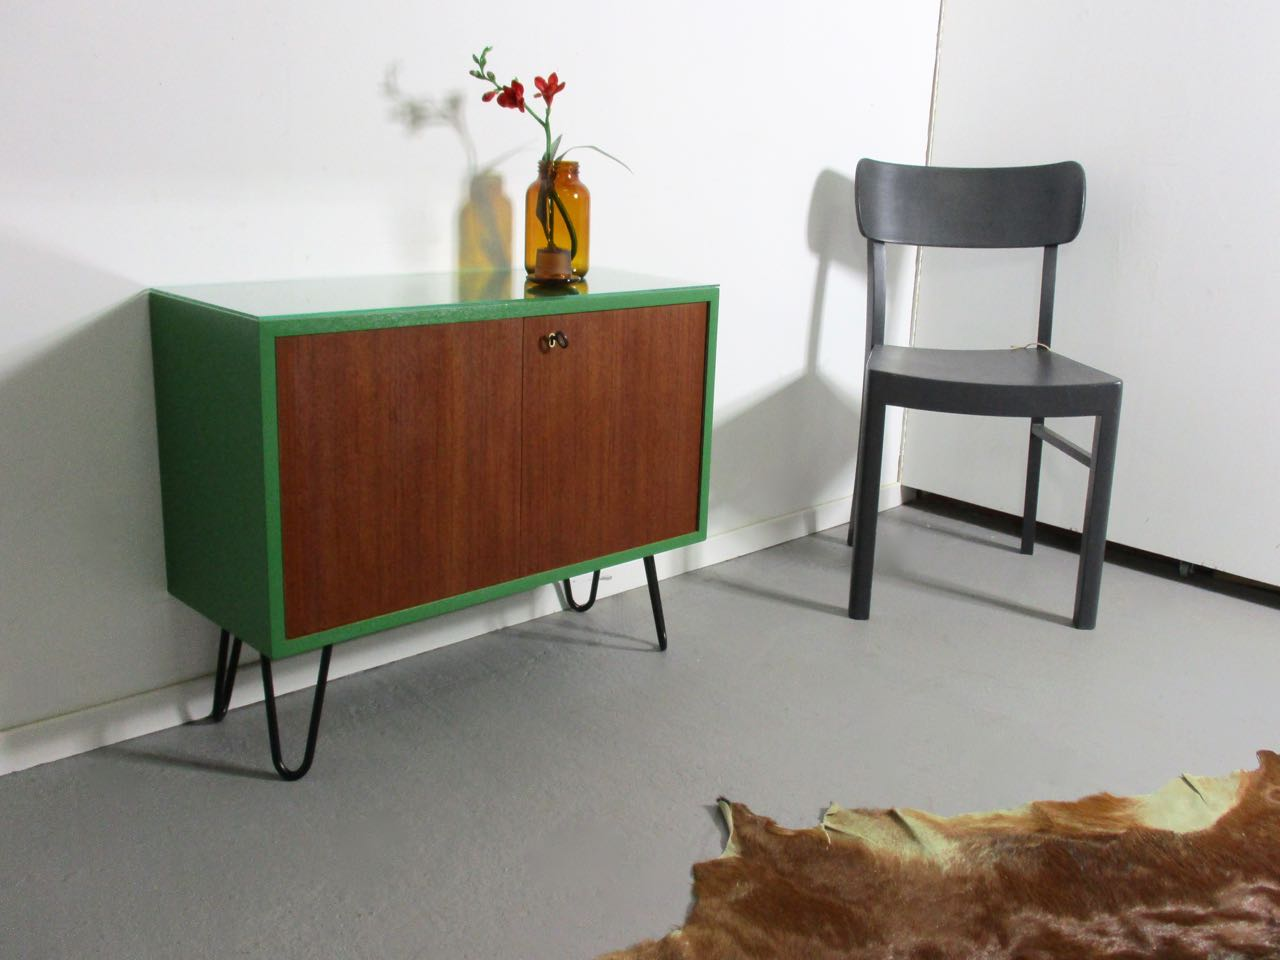 Grasgrün Berlin Sold Kommode In Teak Und Grasgrün Retro Salon Cologne